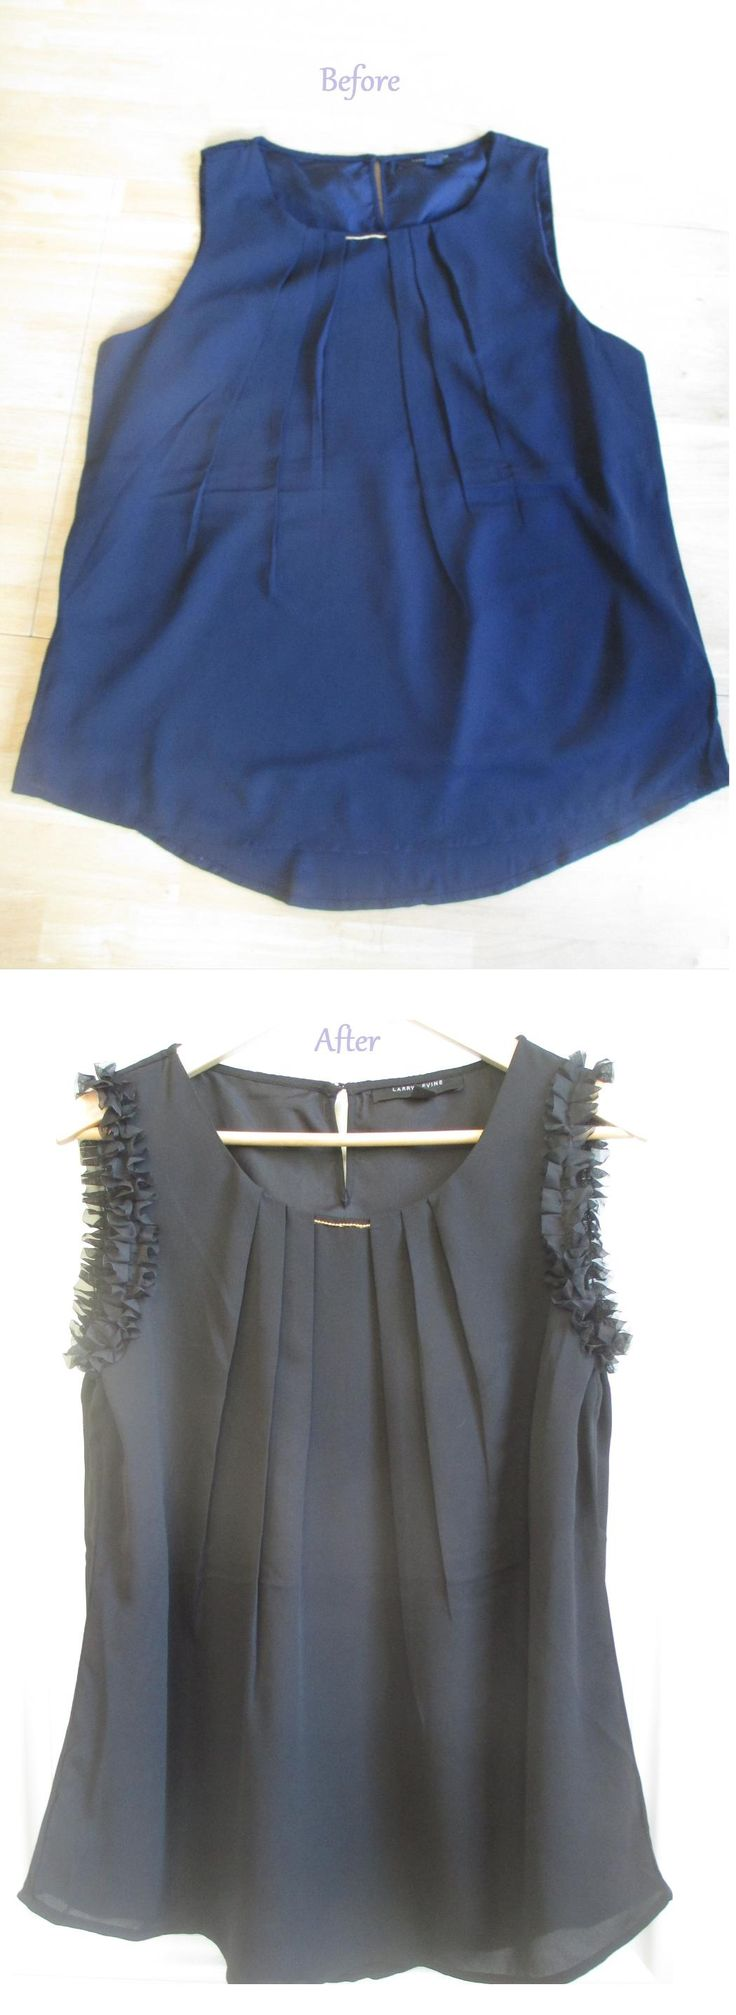 DIY Blouse Makeover with Ruffles - Clothes Refashion Tutorial